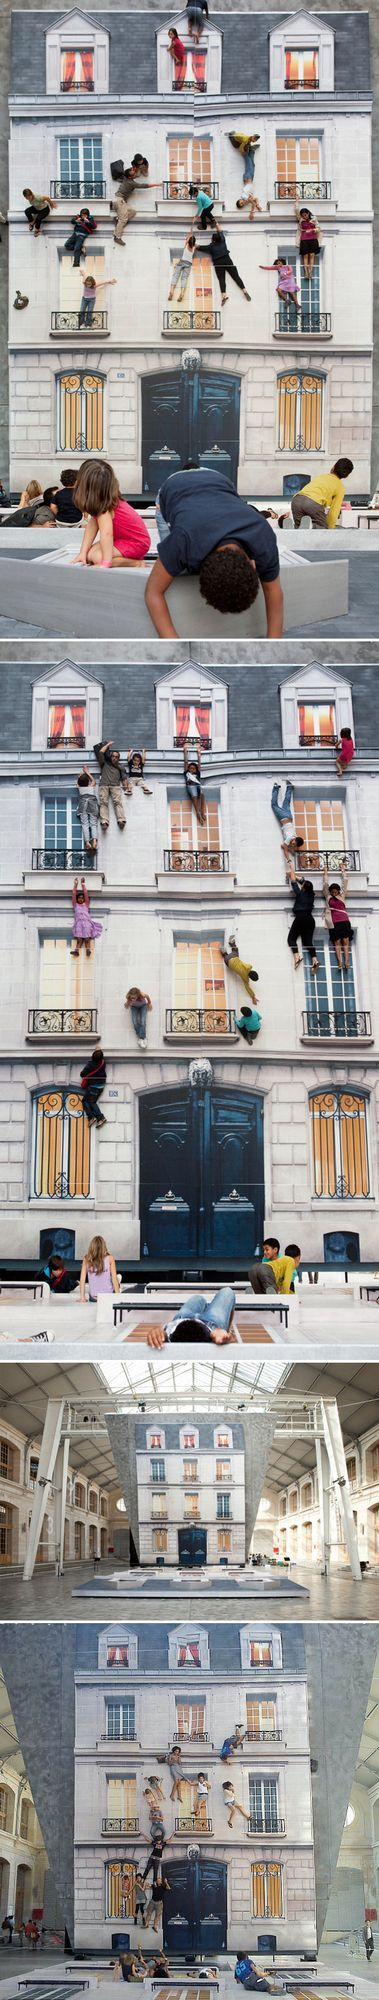 Yes. I really really want to dangle myself from one of those pretty french balconies… from the safety of the floor! Leandro Erlich is an amazing installation artist from Argentina. I may have to post